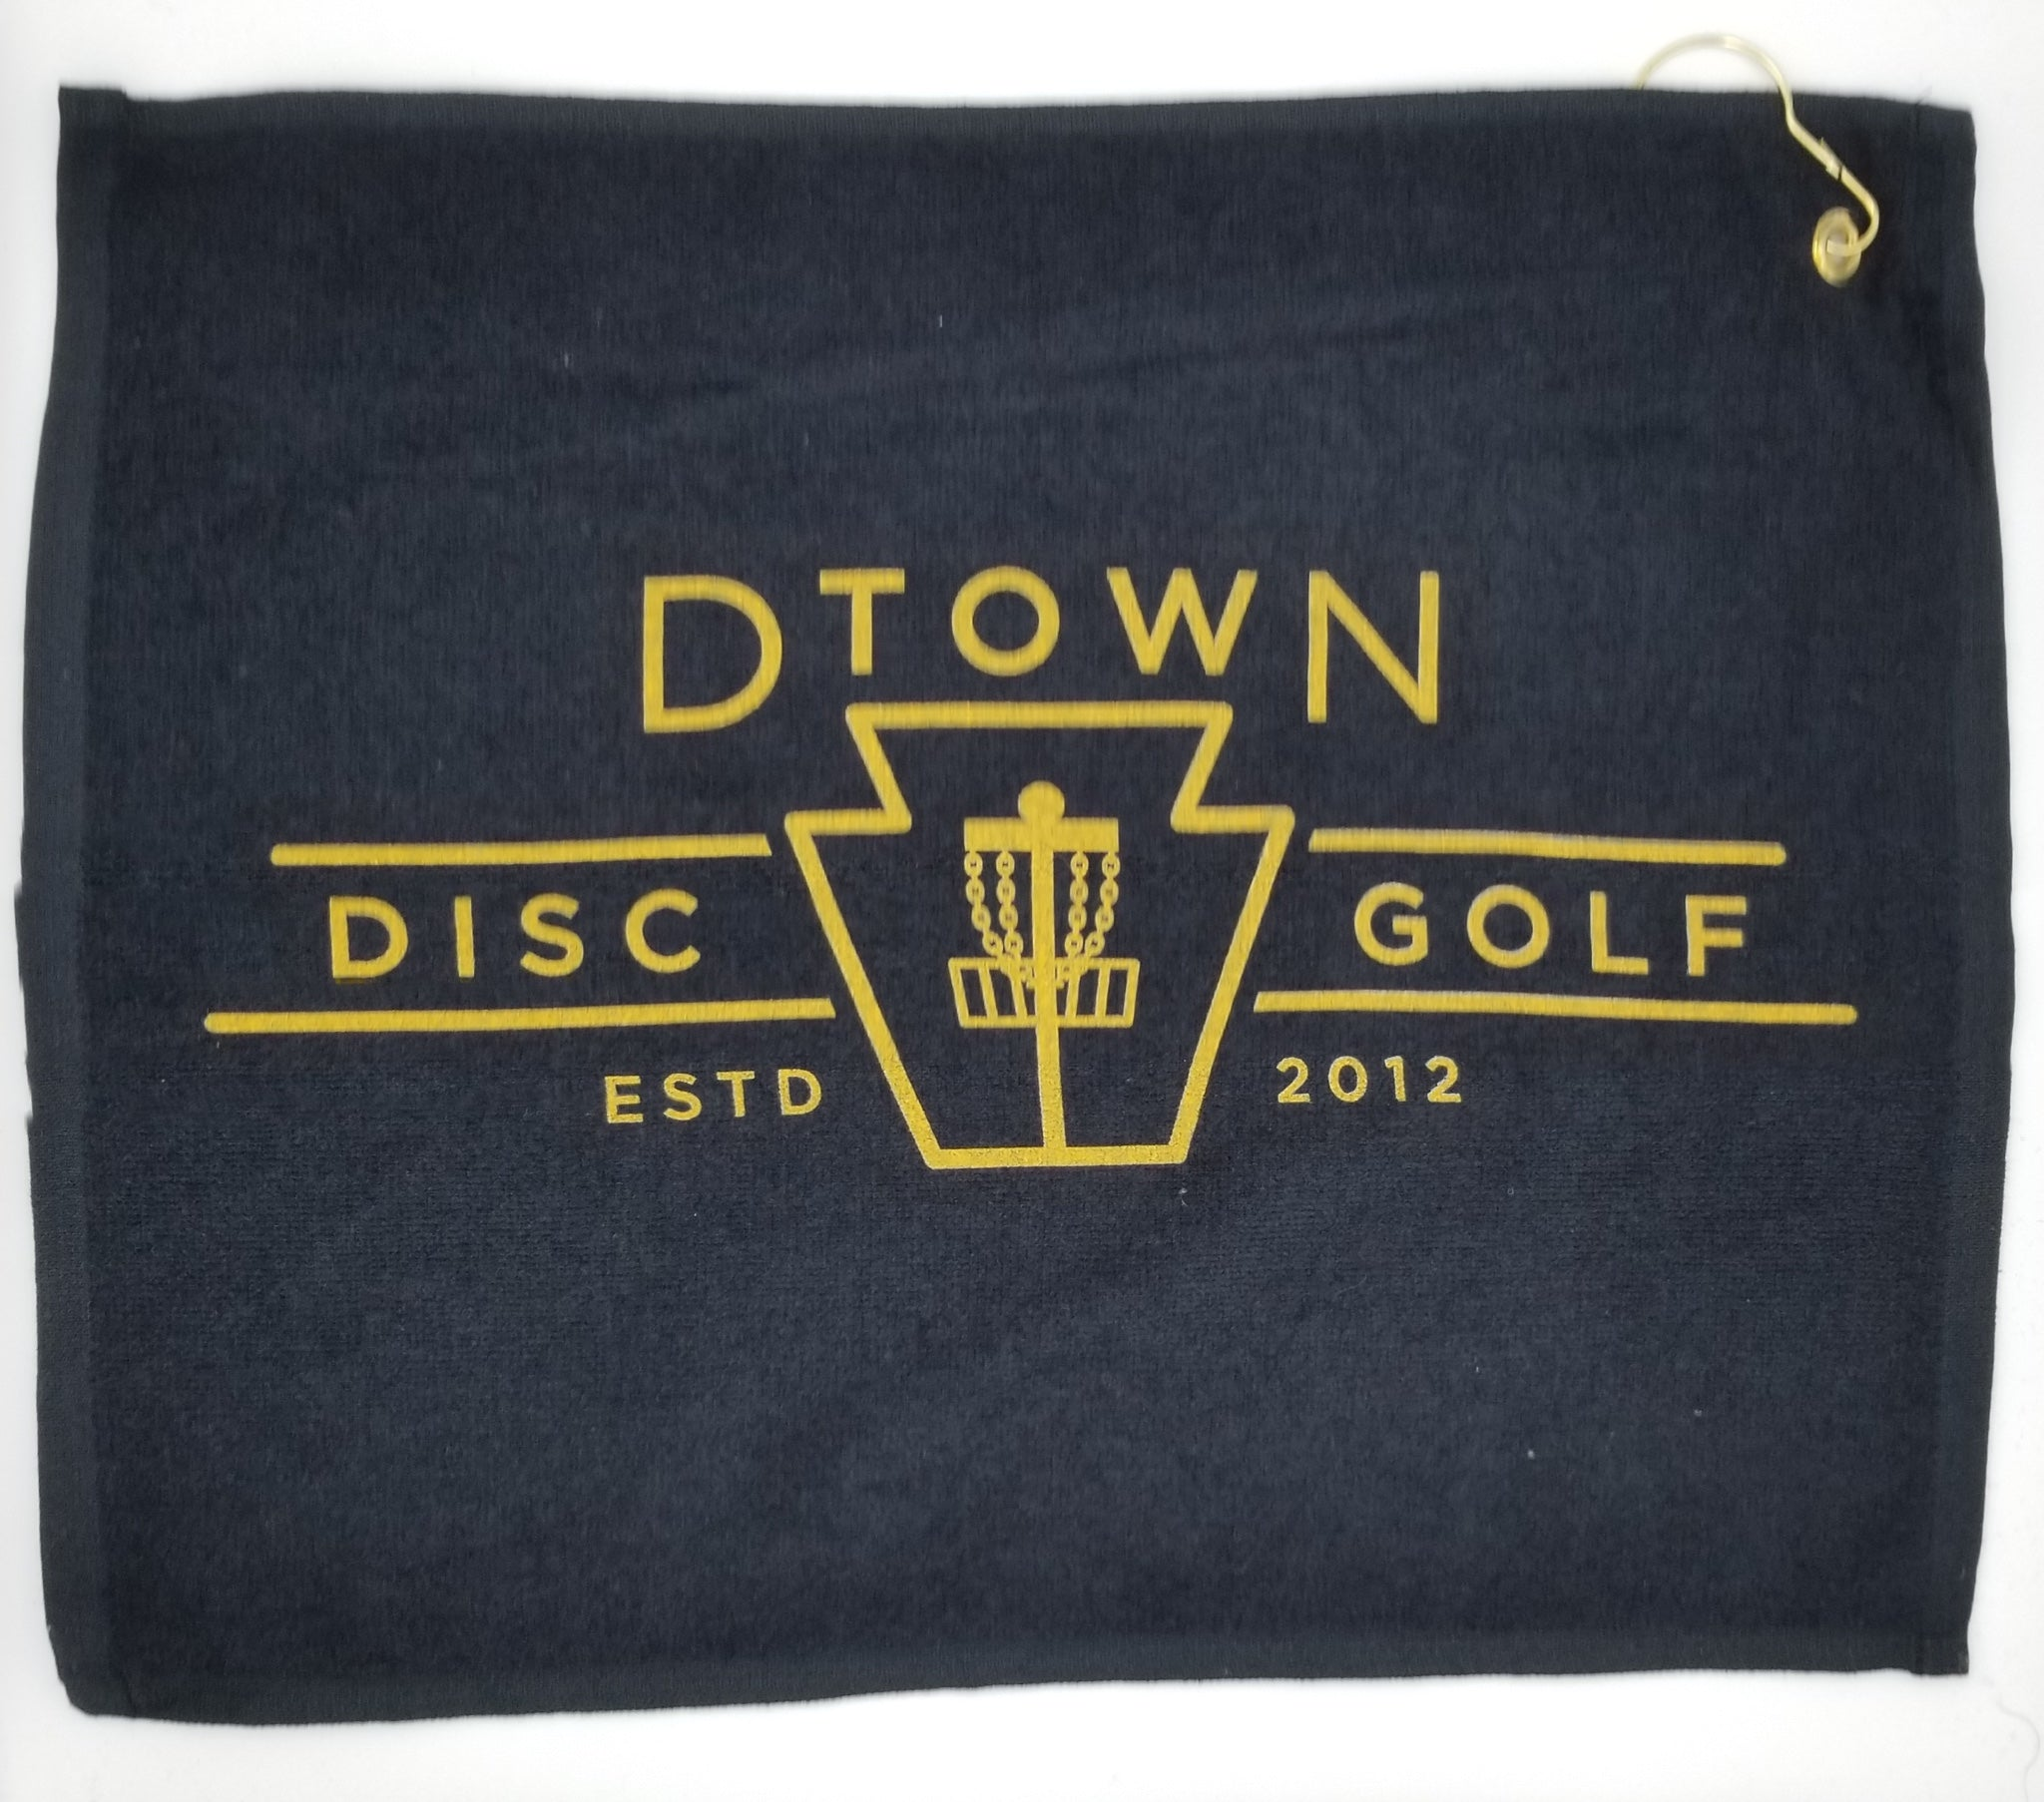 D-town Disc Golf Towel